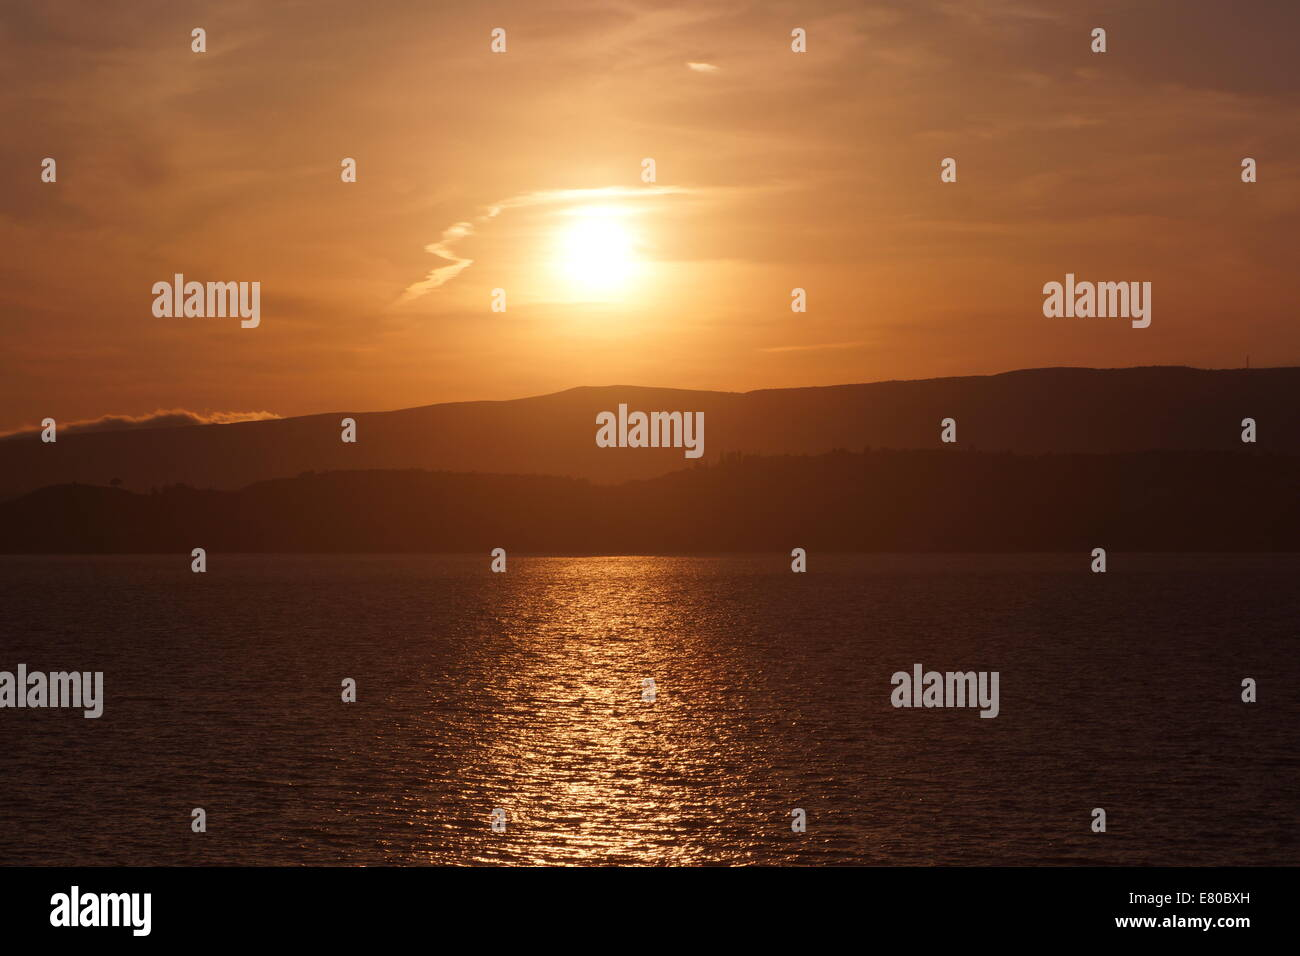 Setting sun, reflection on sea, Kefalonia - Stock Image